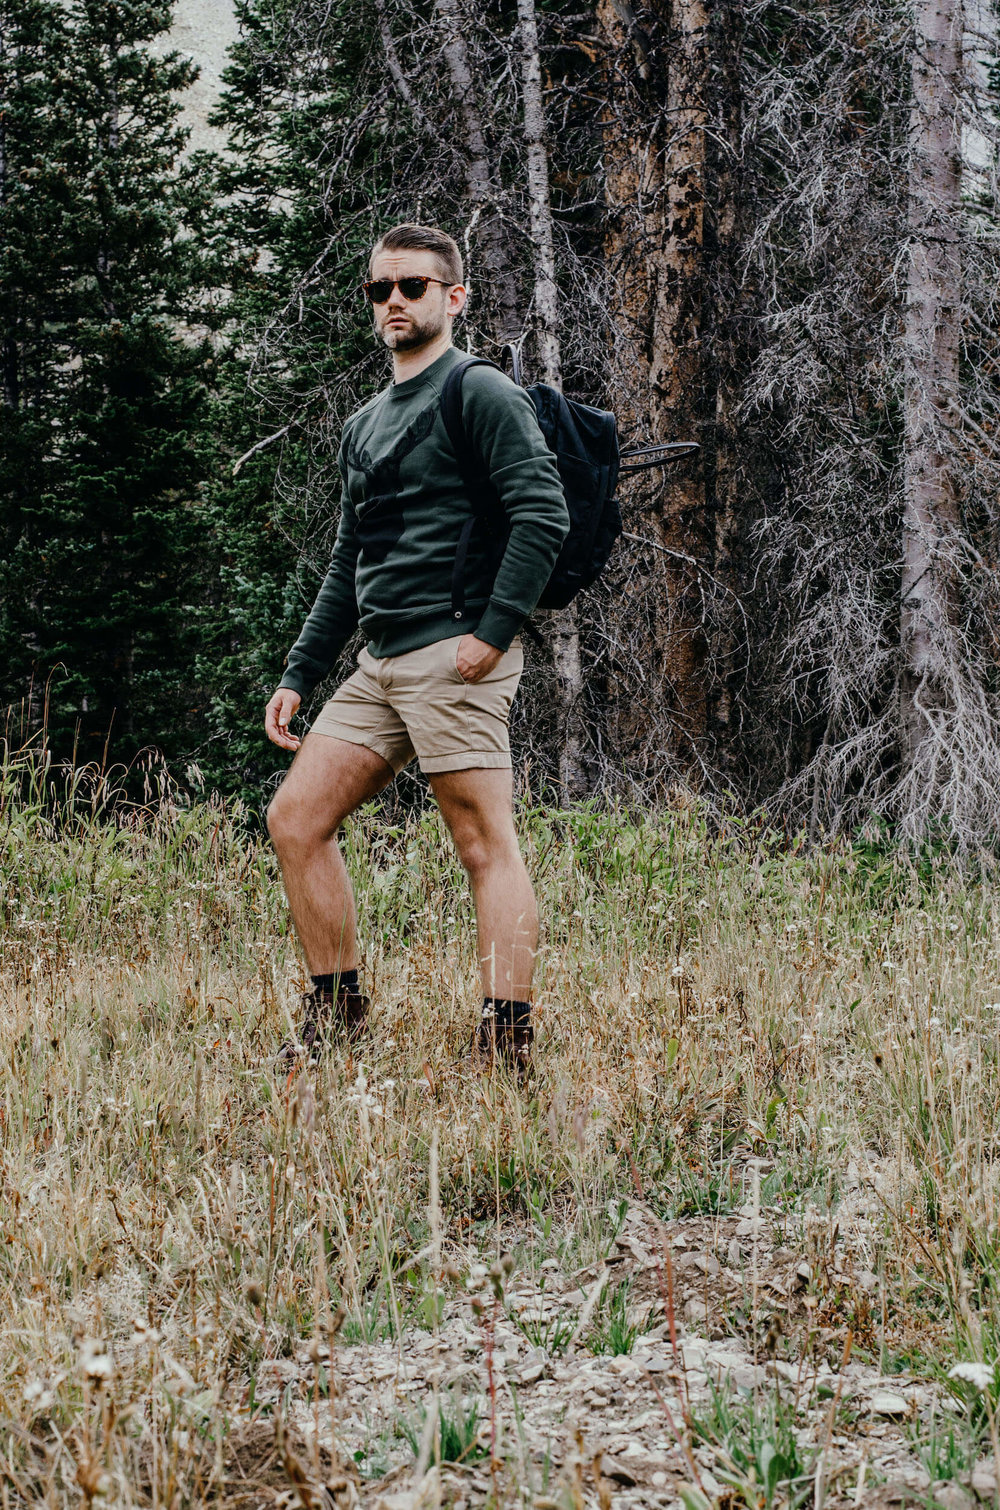 Menswear outfits for hiking in Colorado